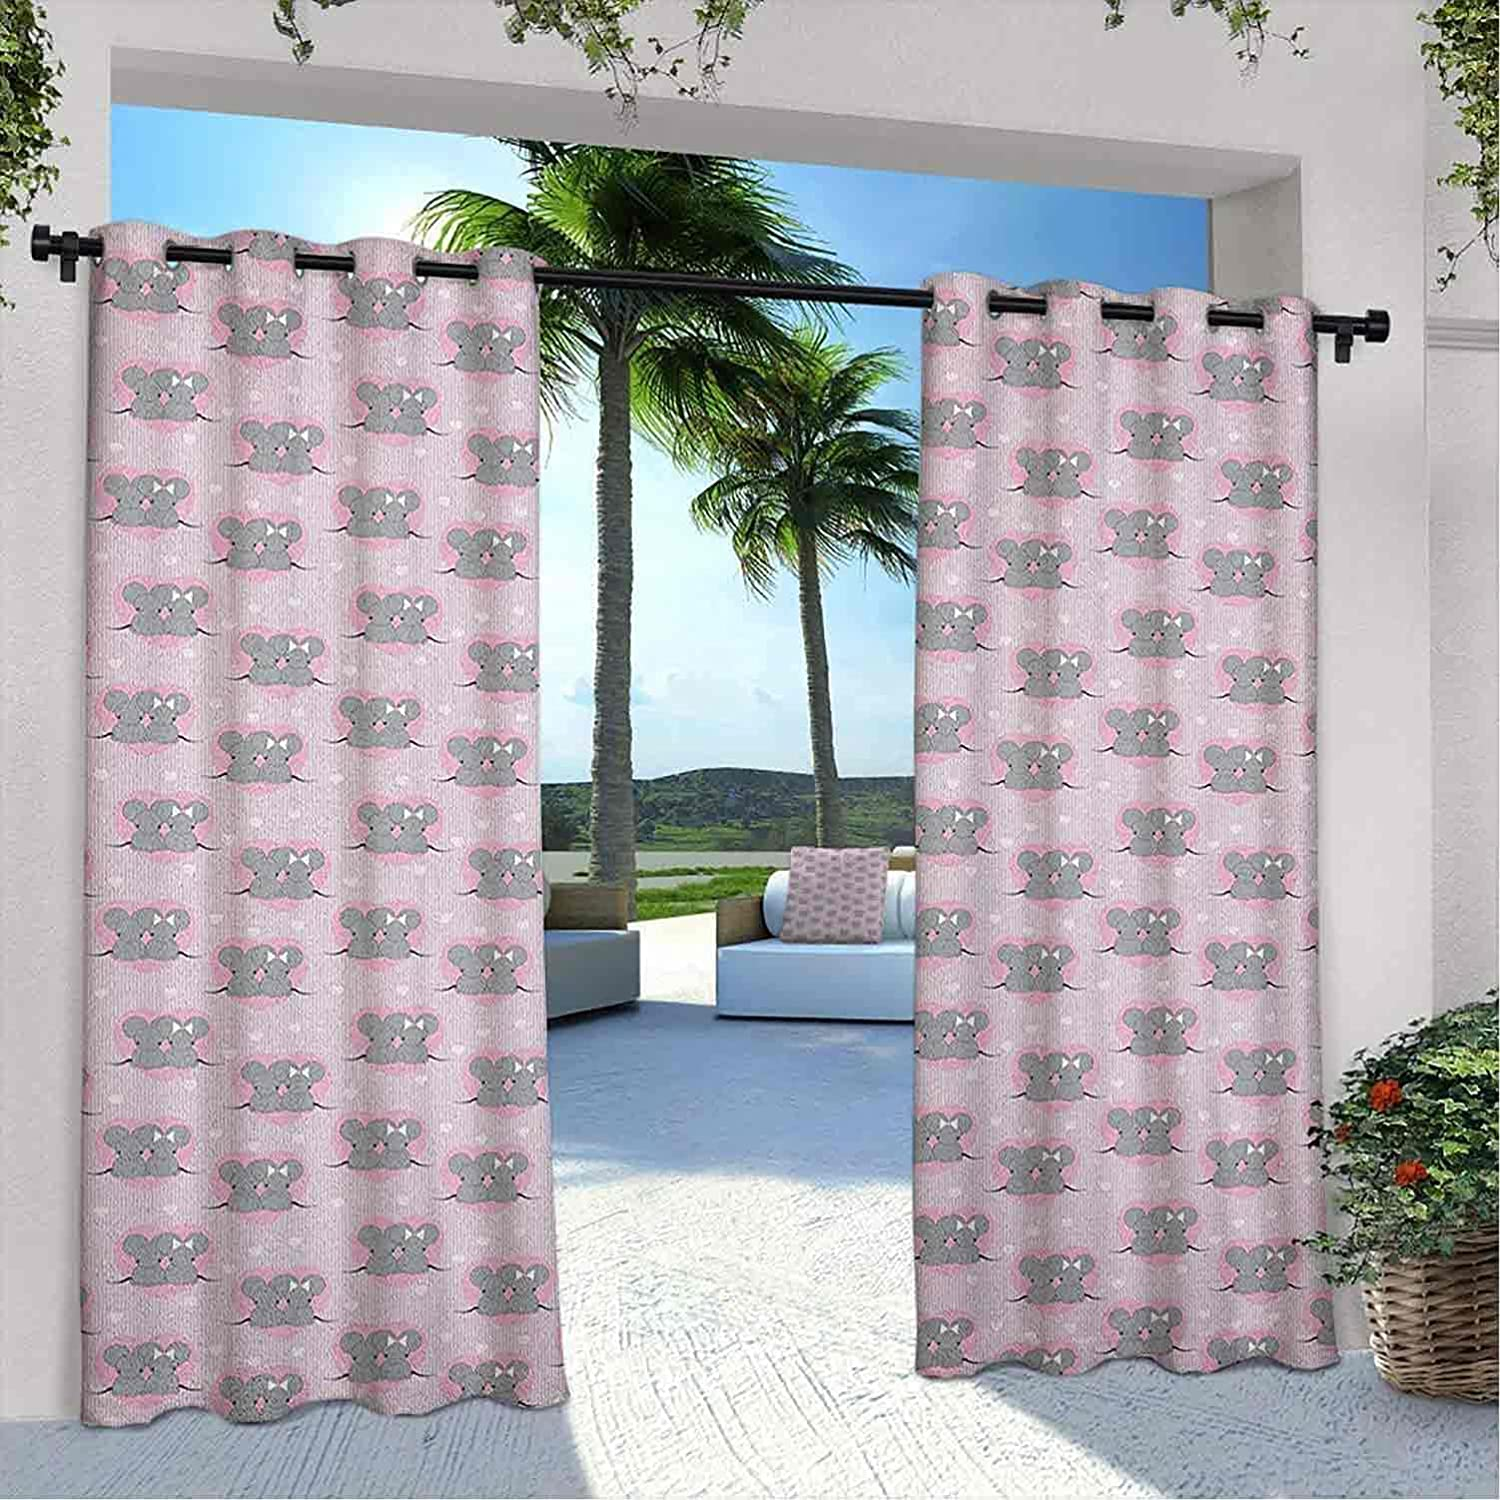 Outdoor Pavilion Pink Ranking TOP4 and Grey Little Mouse Curtain Characters Elegant